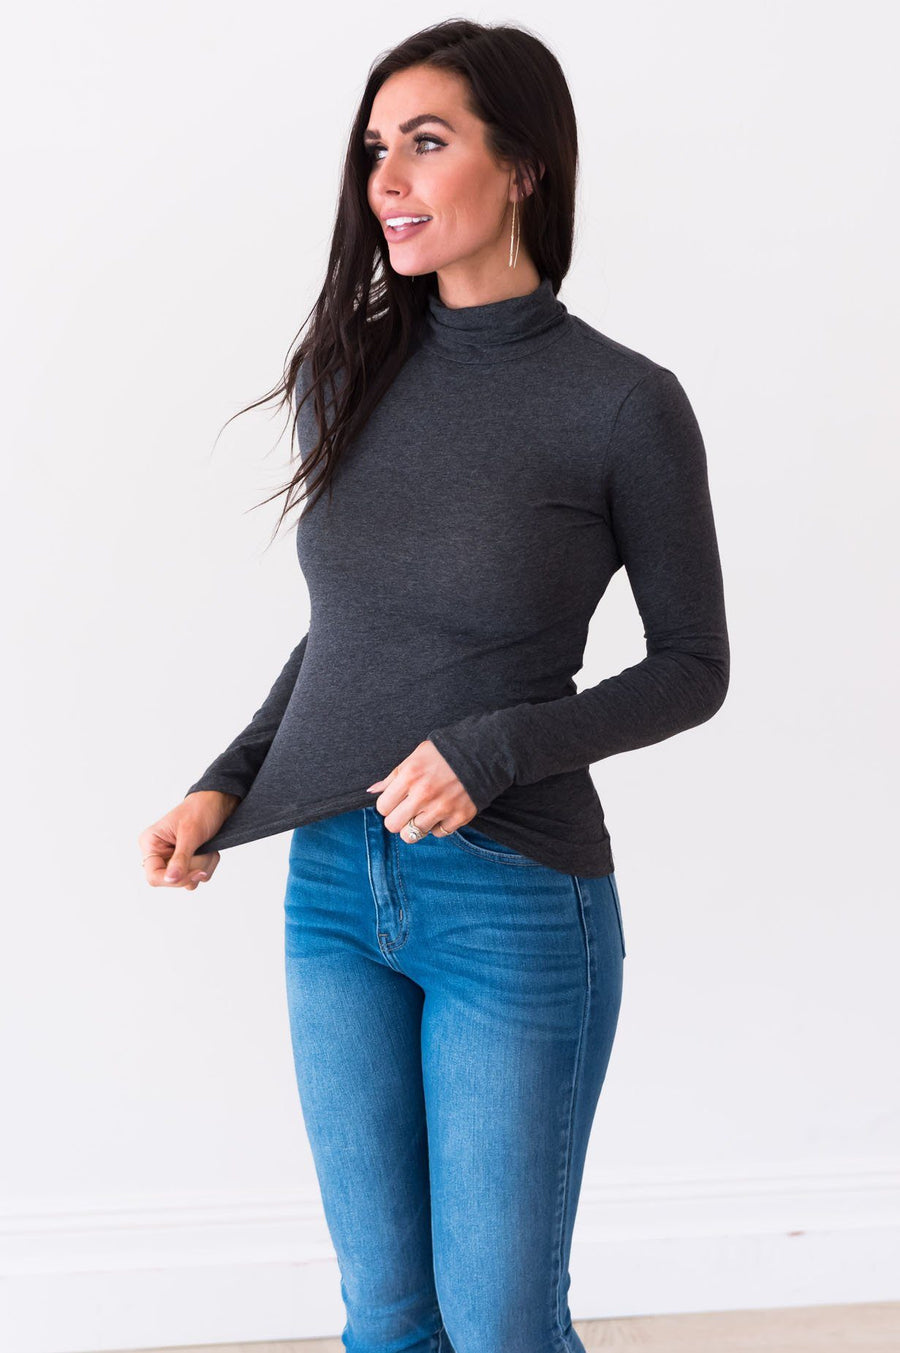 Get Close To Me Modest Turtleneck Tops vendor-unknown